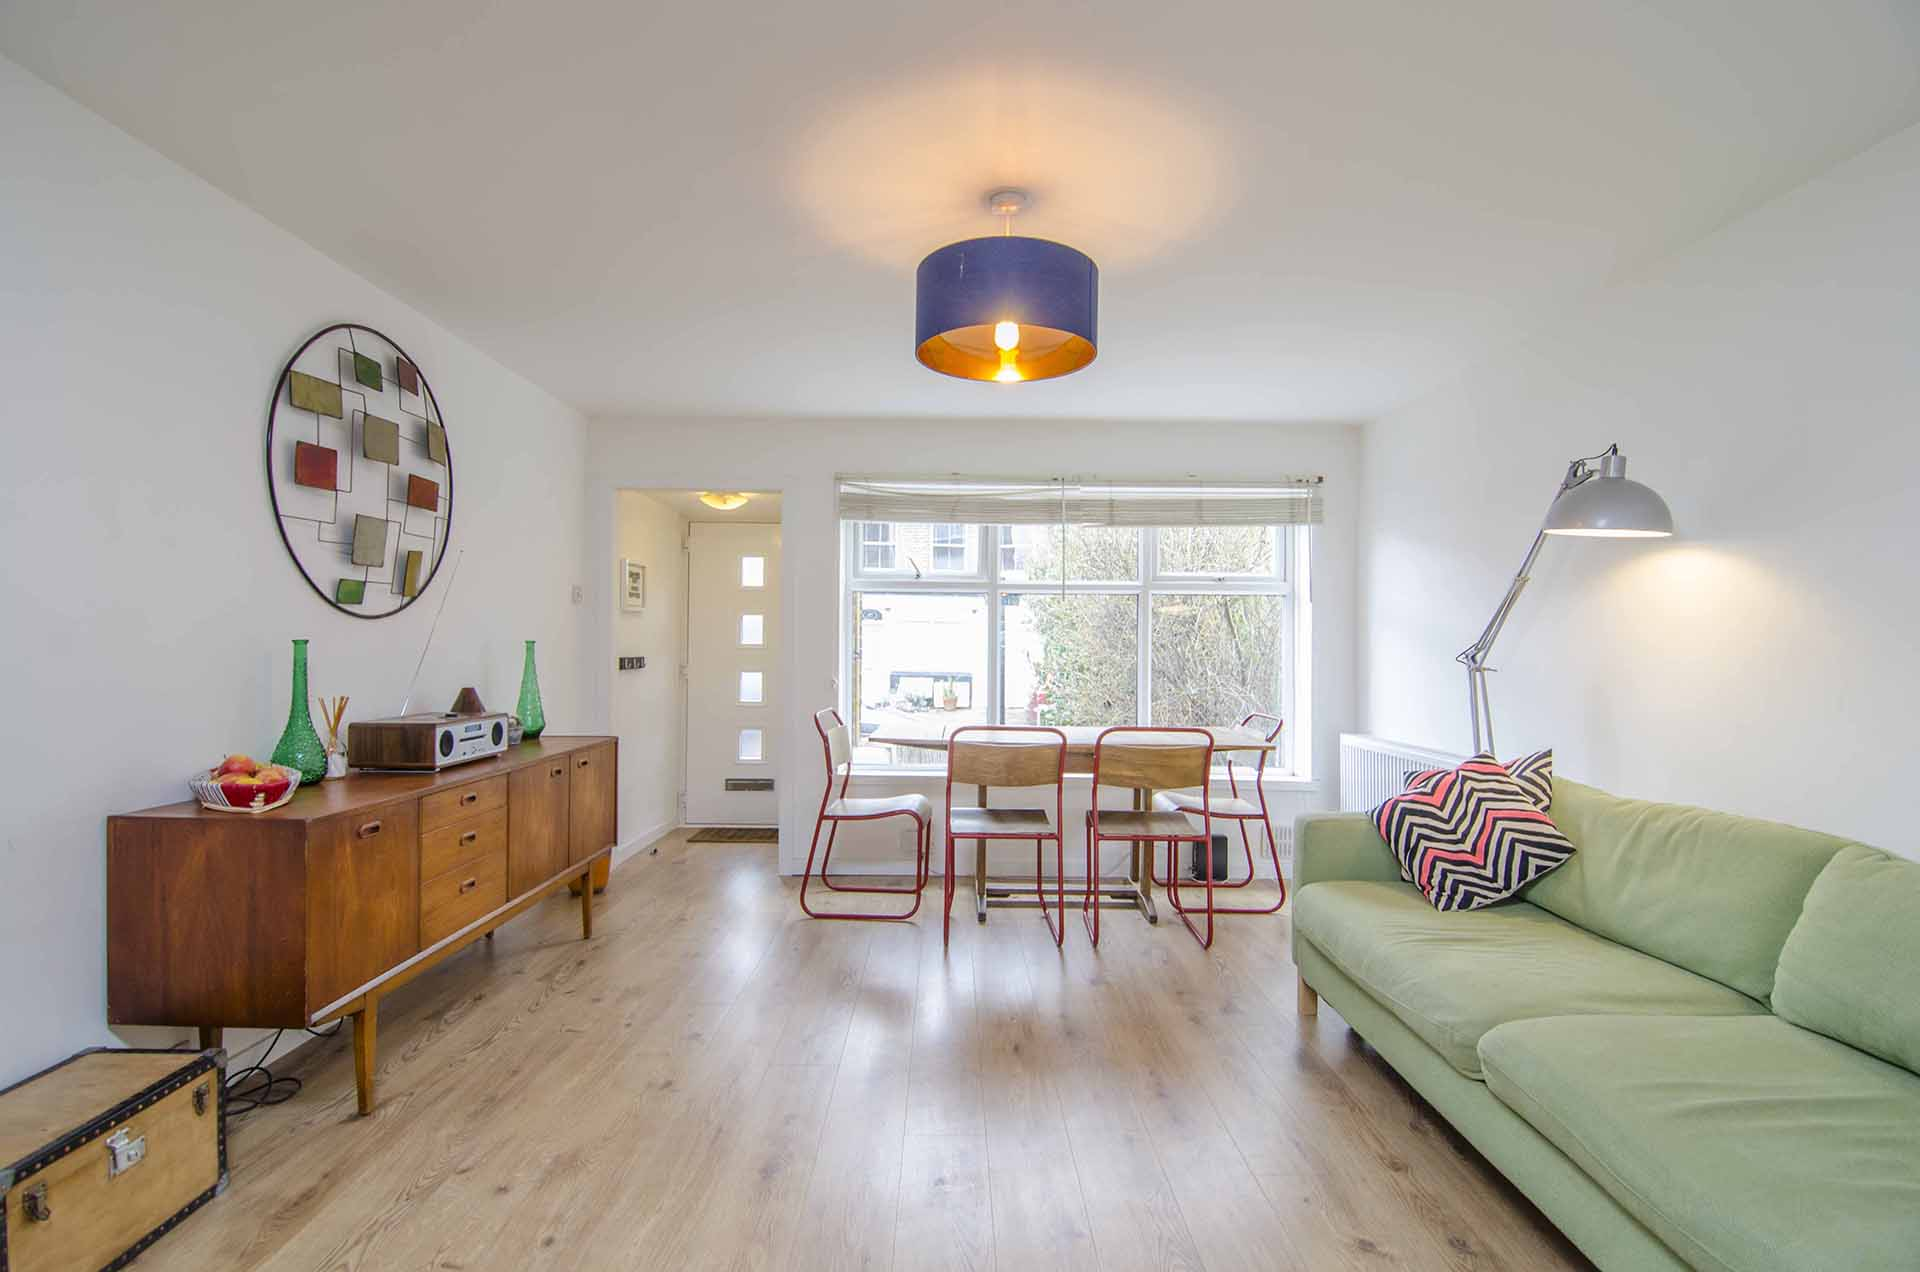 The House Photographer - Property Photography - E17 2